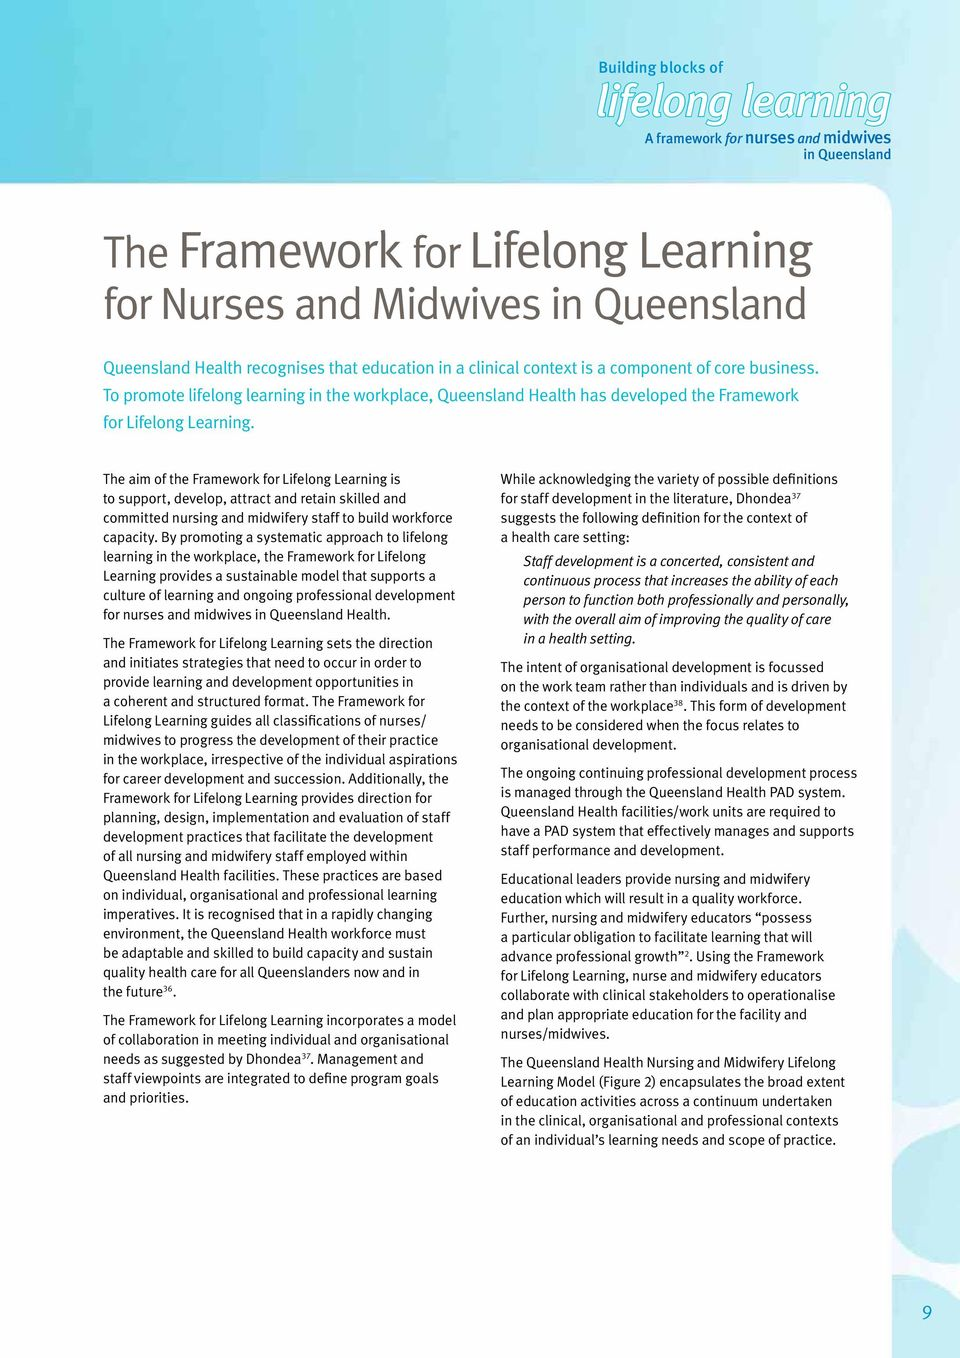 The aim of the Framework for Lifelong Learning is to support, develop, attract and retain skilled and committed nursing and midwifery staff to build workforce capacity.